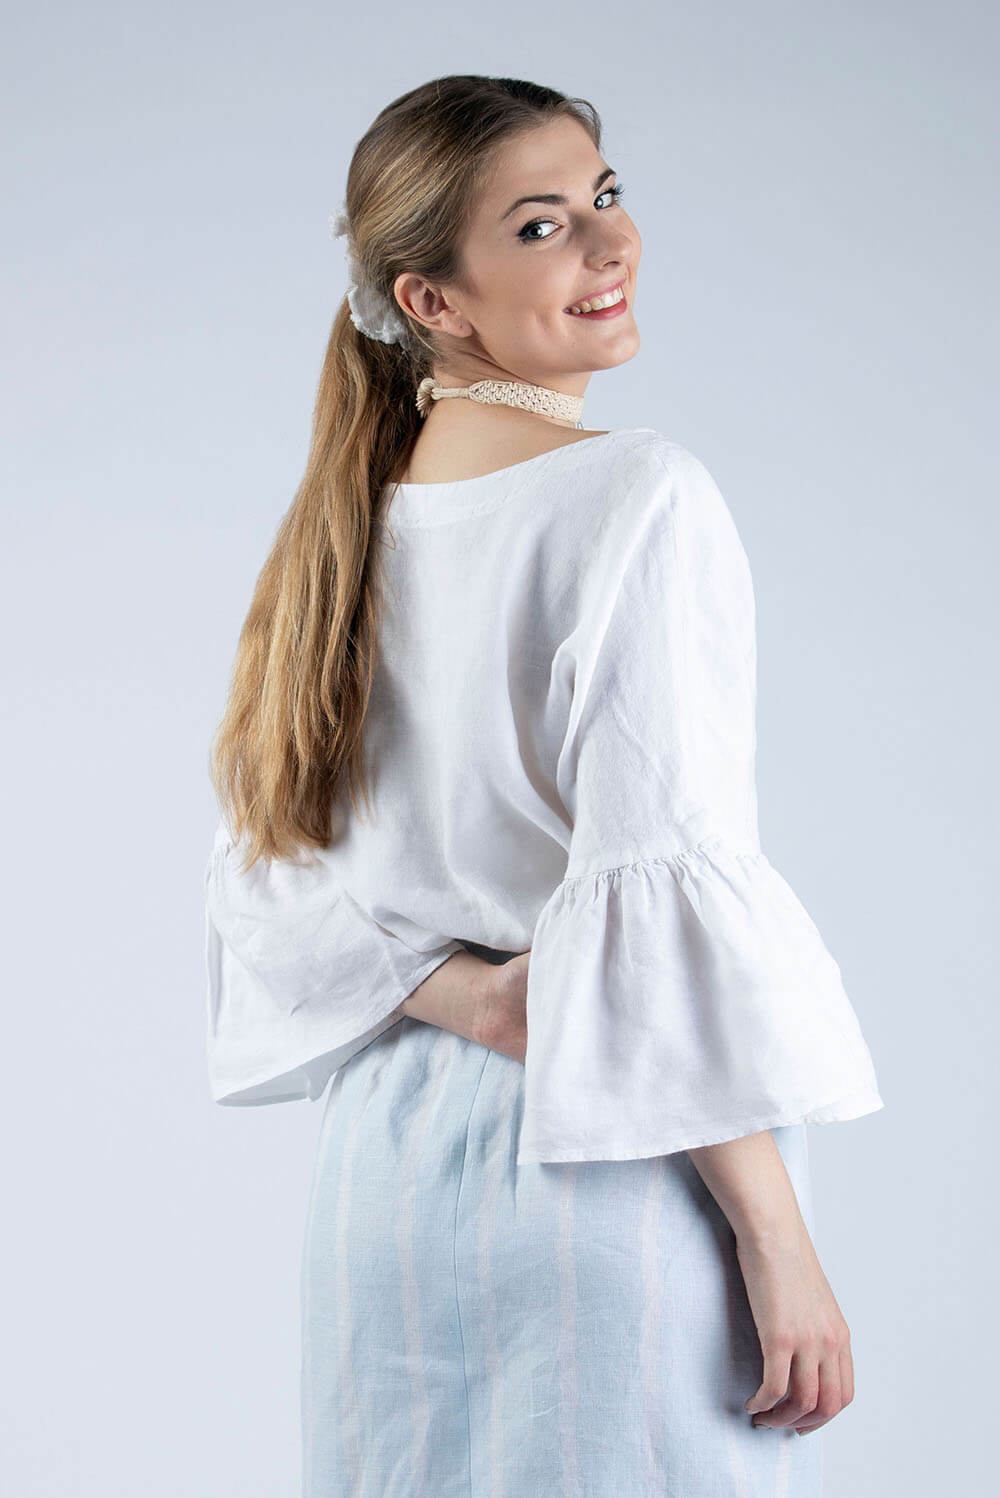 Hannah linen blouse with ruffle sleeve, back view